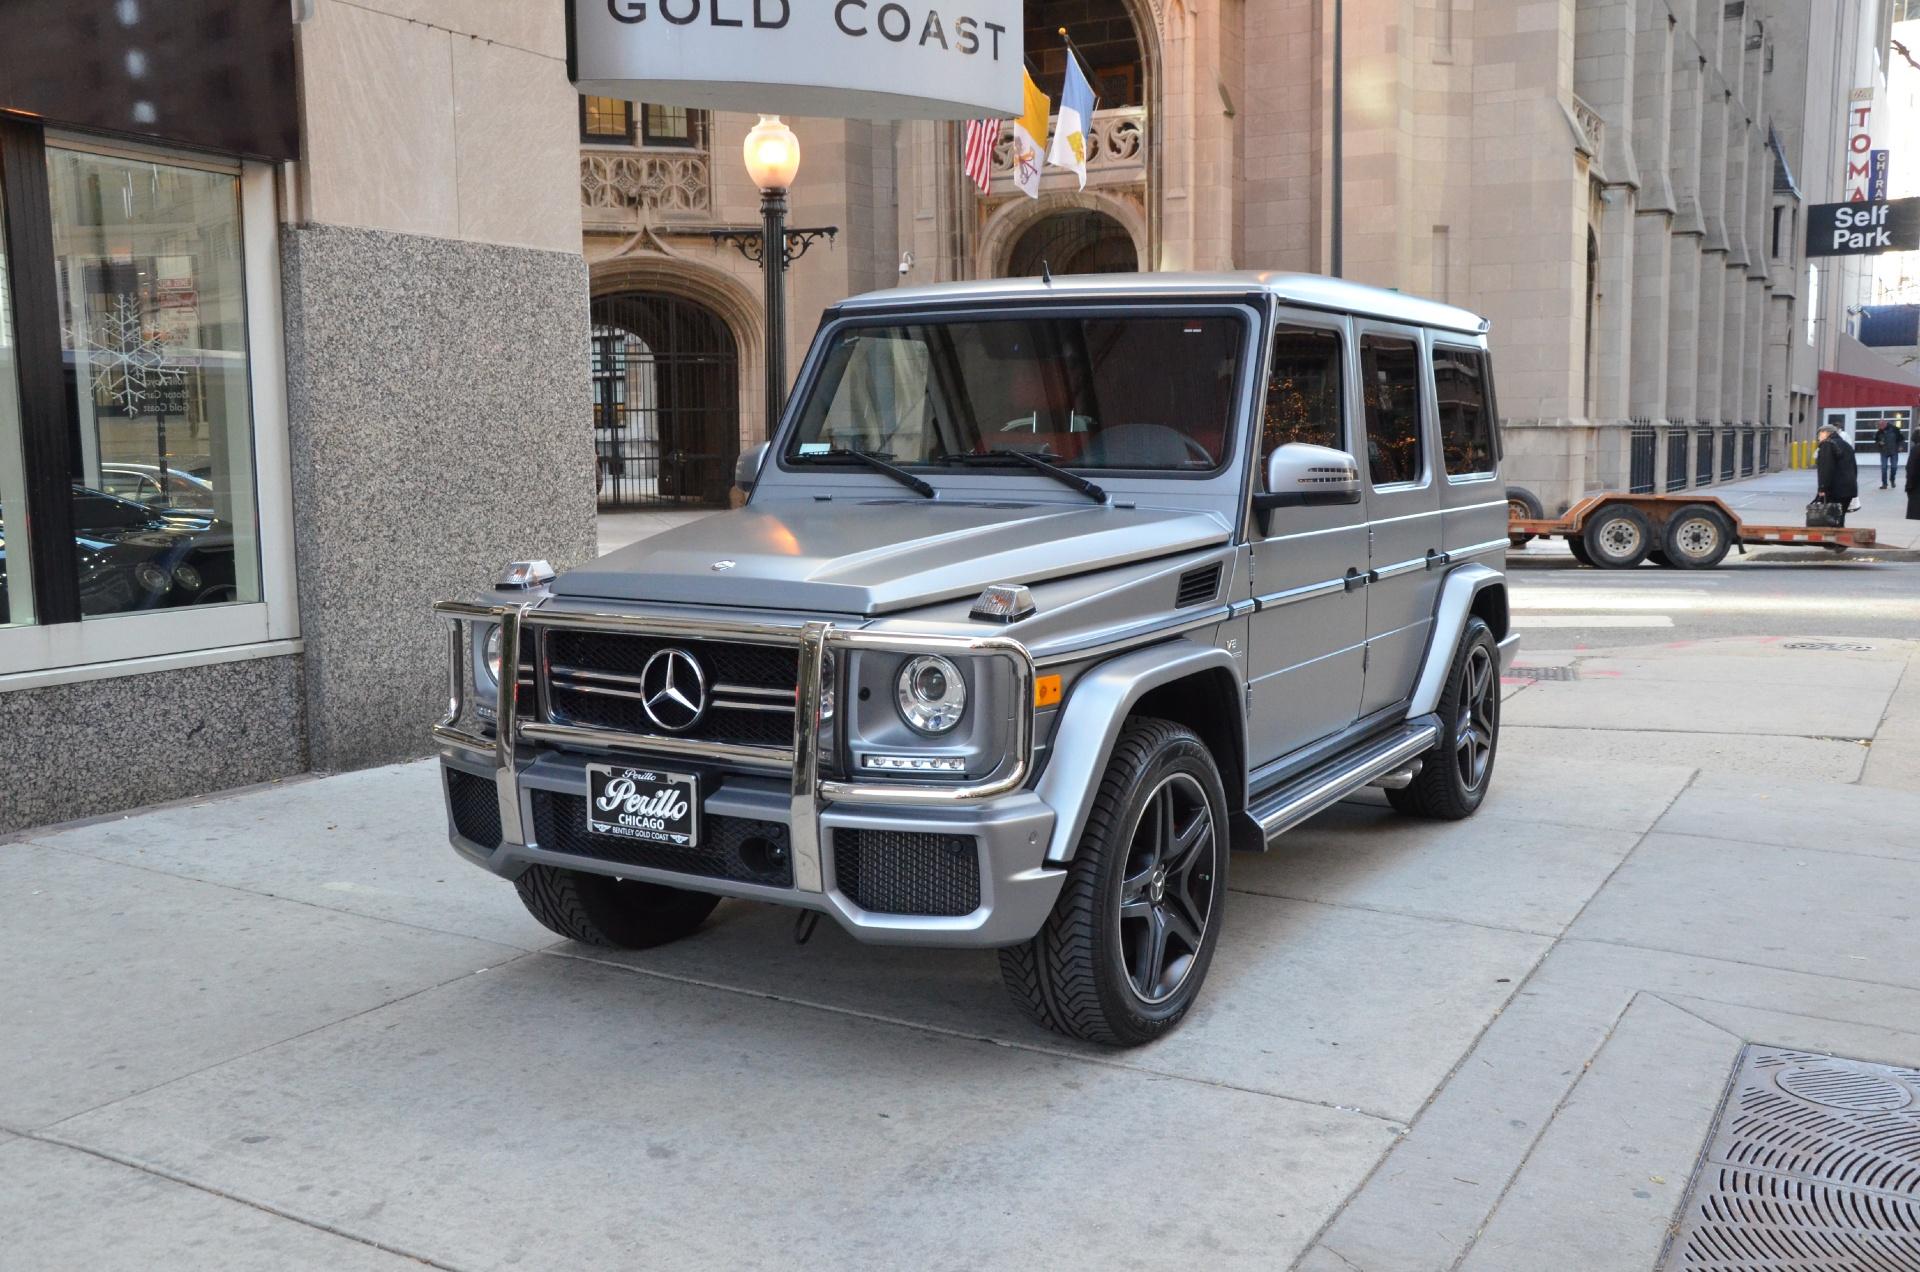 2014 mercedes benz g class g63 amg stock 19812 for sale for G63 mercedes benz price